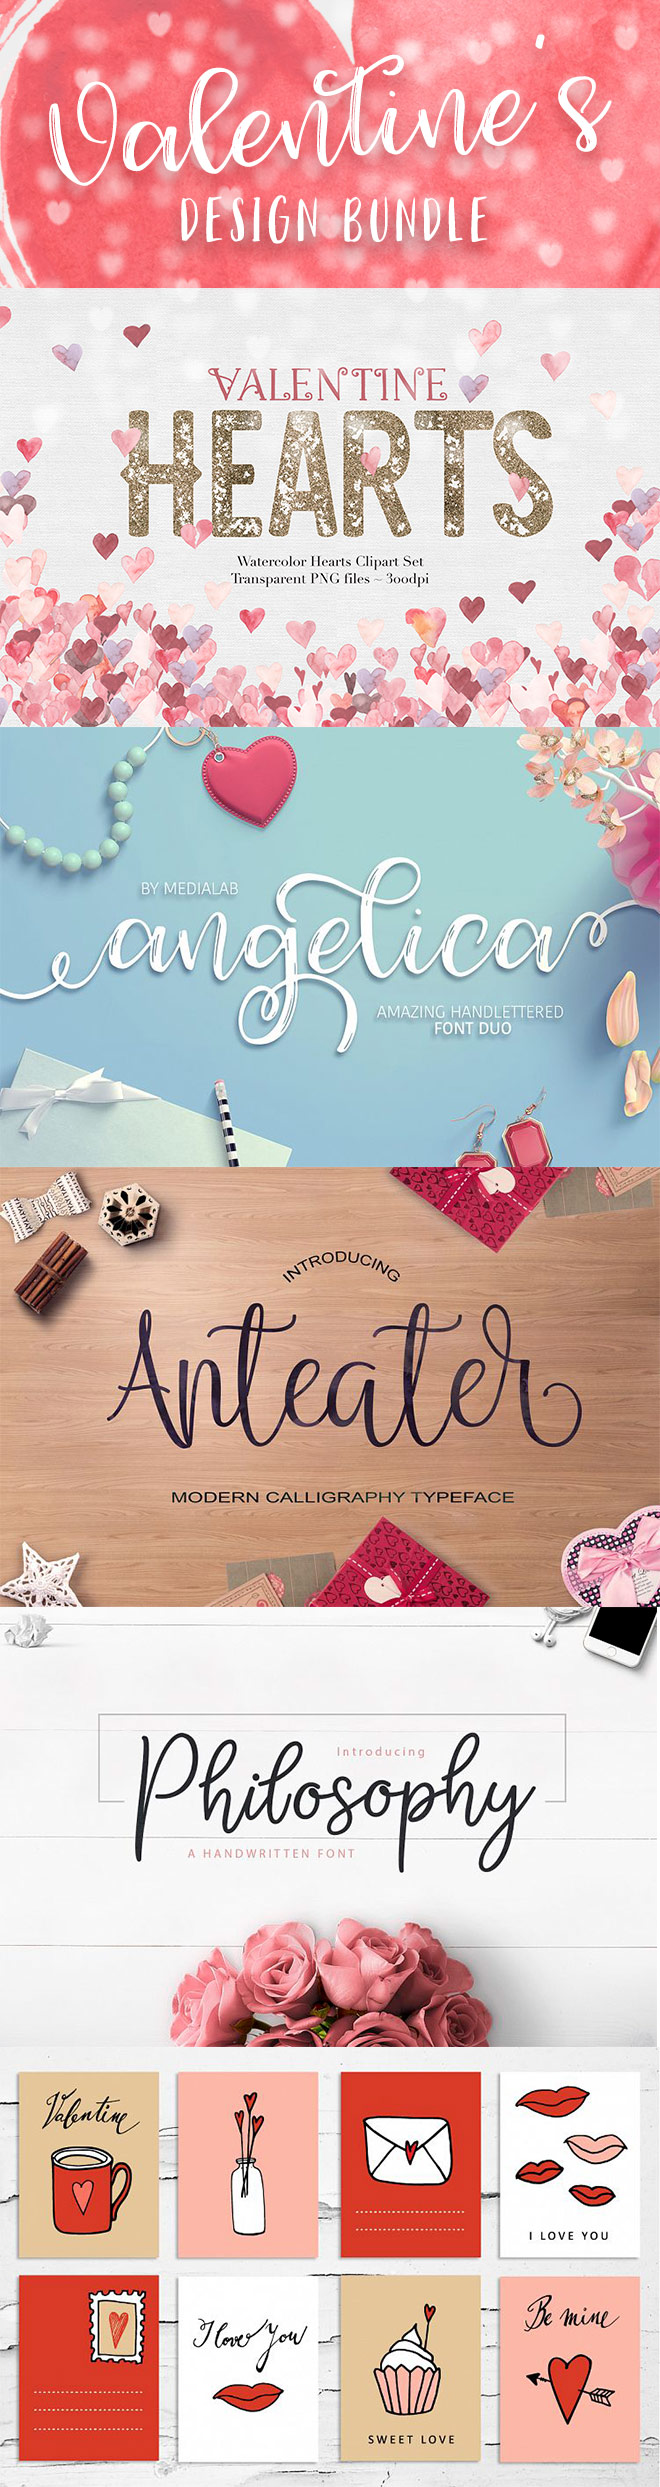 Design beautiful Valentine's Day invitations, coupons, gift cards, greeting cards and posters with this super gorgeous Valentine's Day bundle. It contains 21 Valentine's Day fonts and over 1000 design elements. Click here to see what's included!